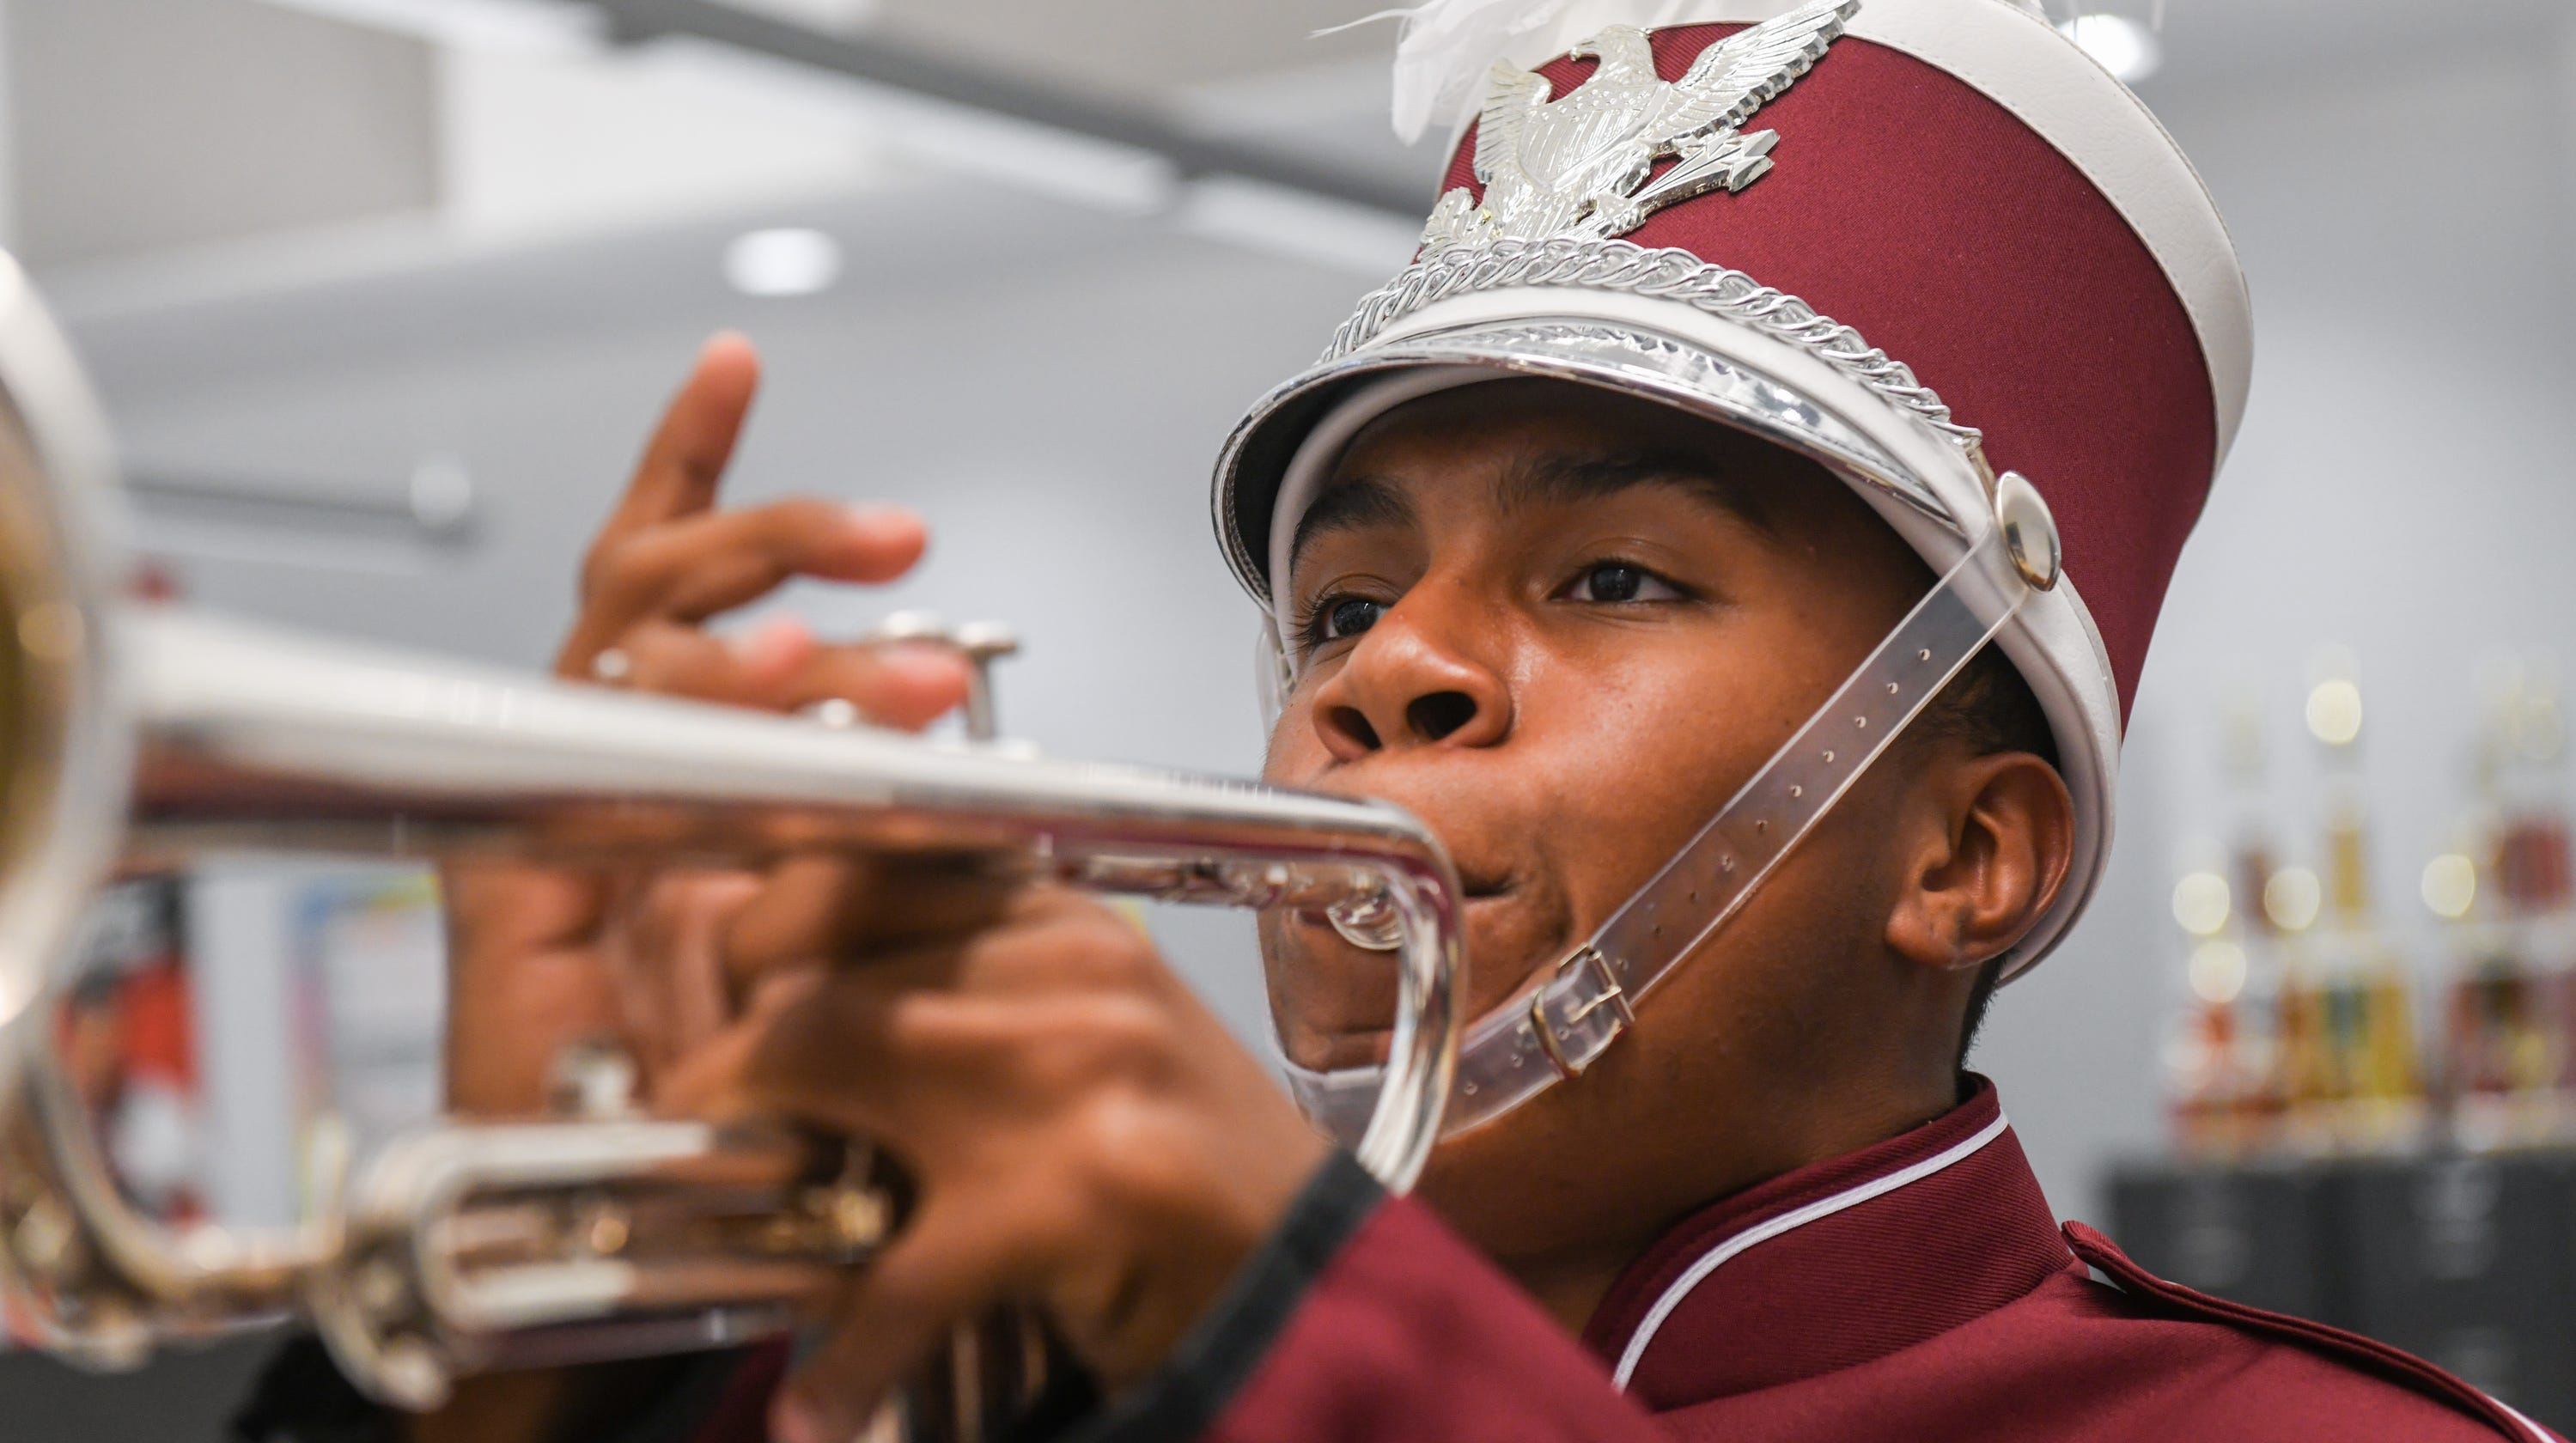 Snow Hill High School Band Gets New Uniforms After 33 Years